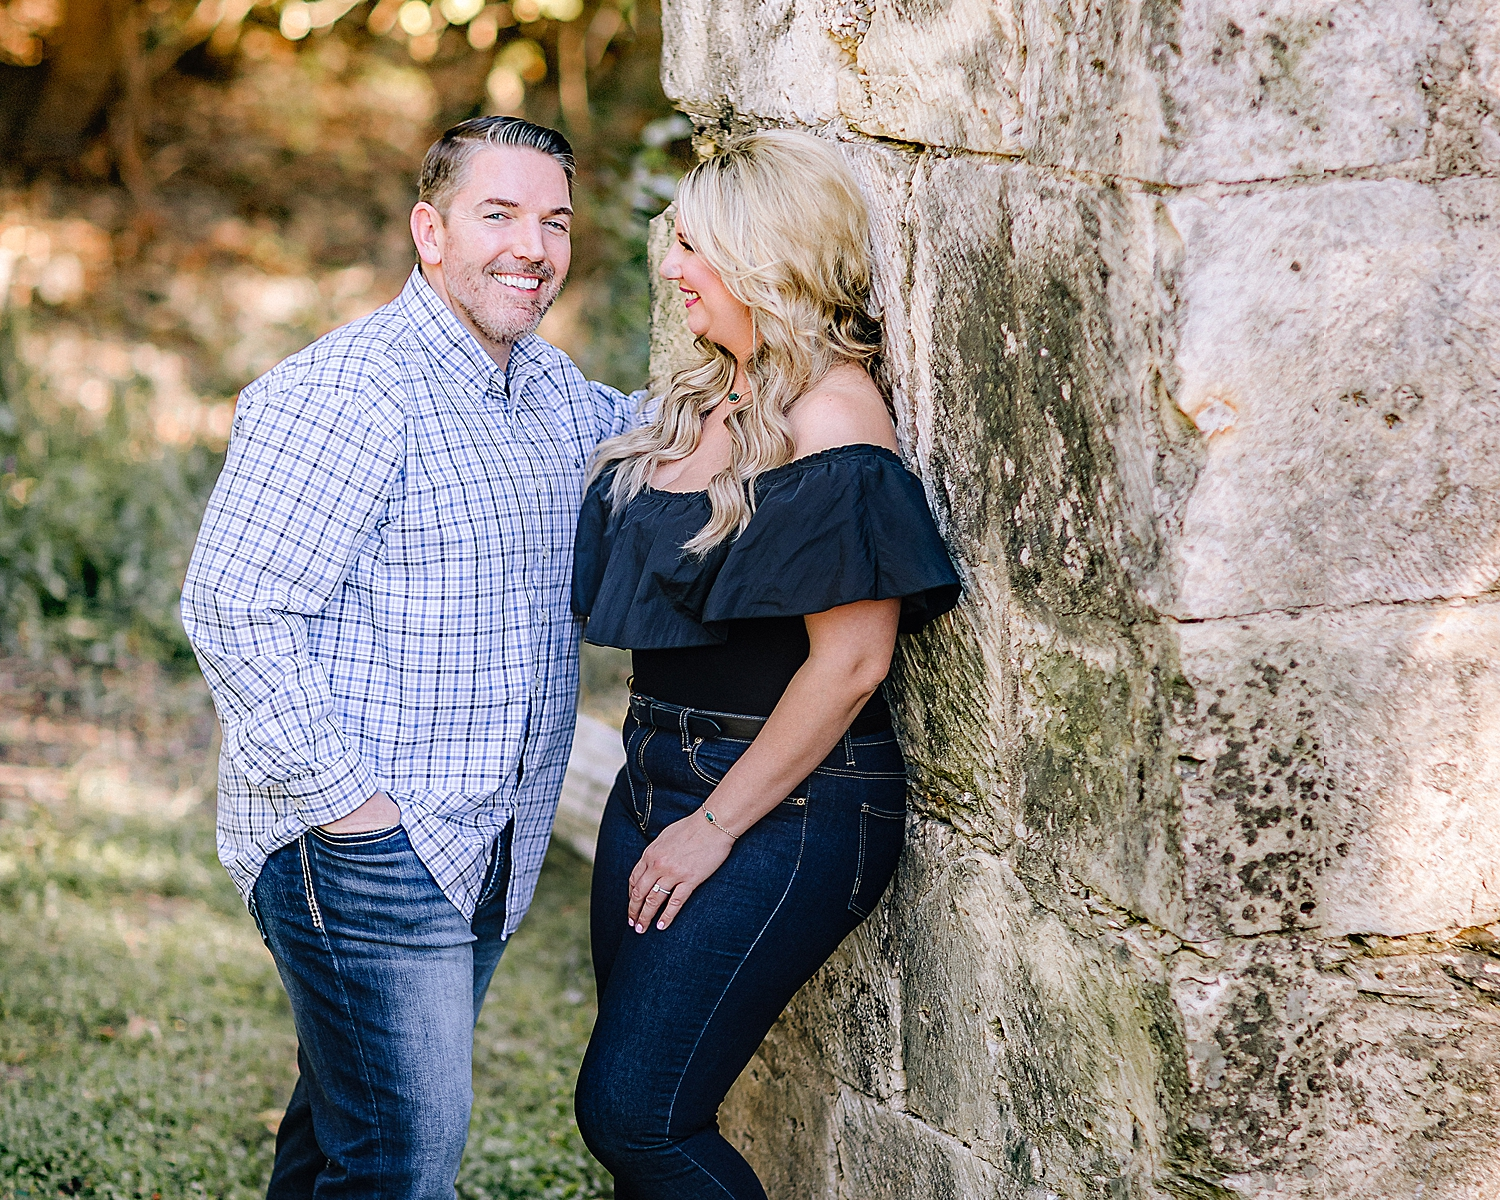 Engagement-Photo-Session-University-of-Incarnate-Word-UIW-San-Antonio-Texas-Carly-Barton-Photography_0030.jpg